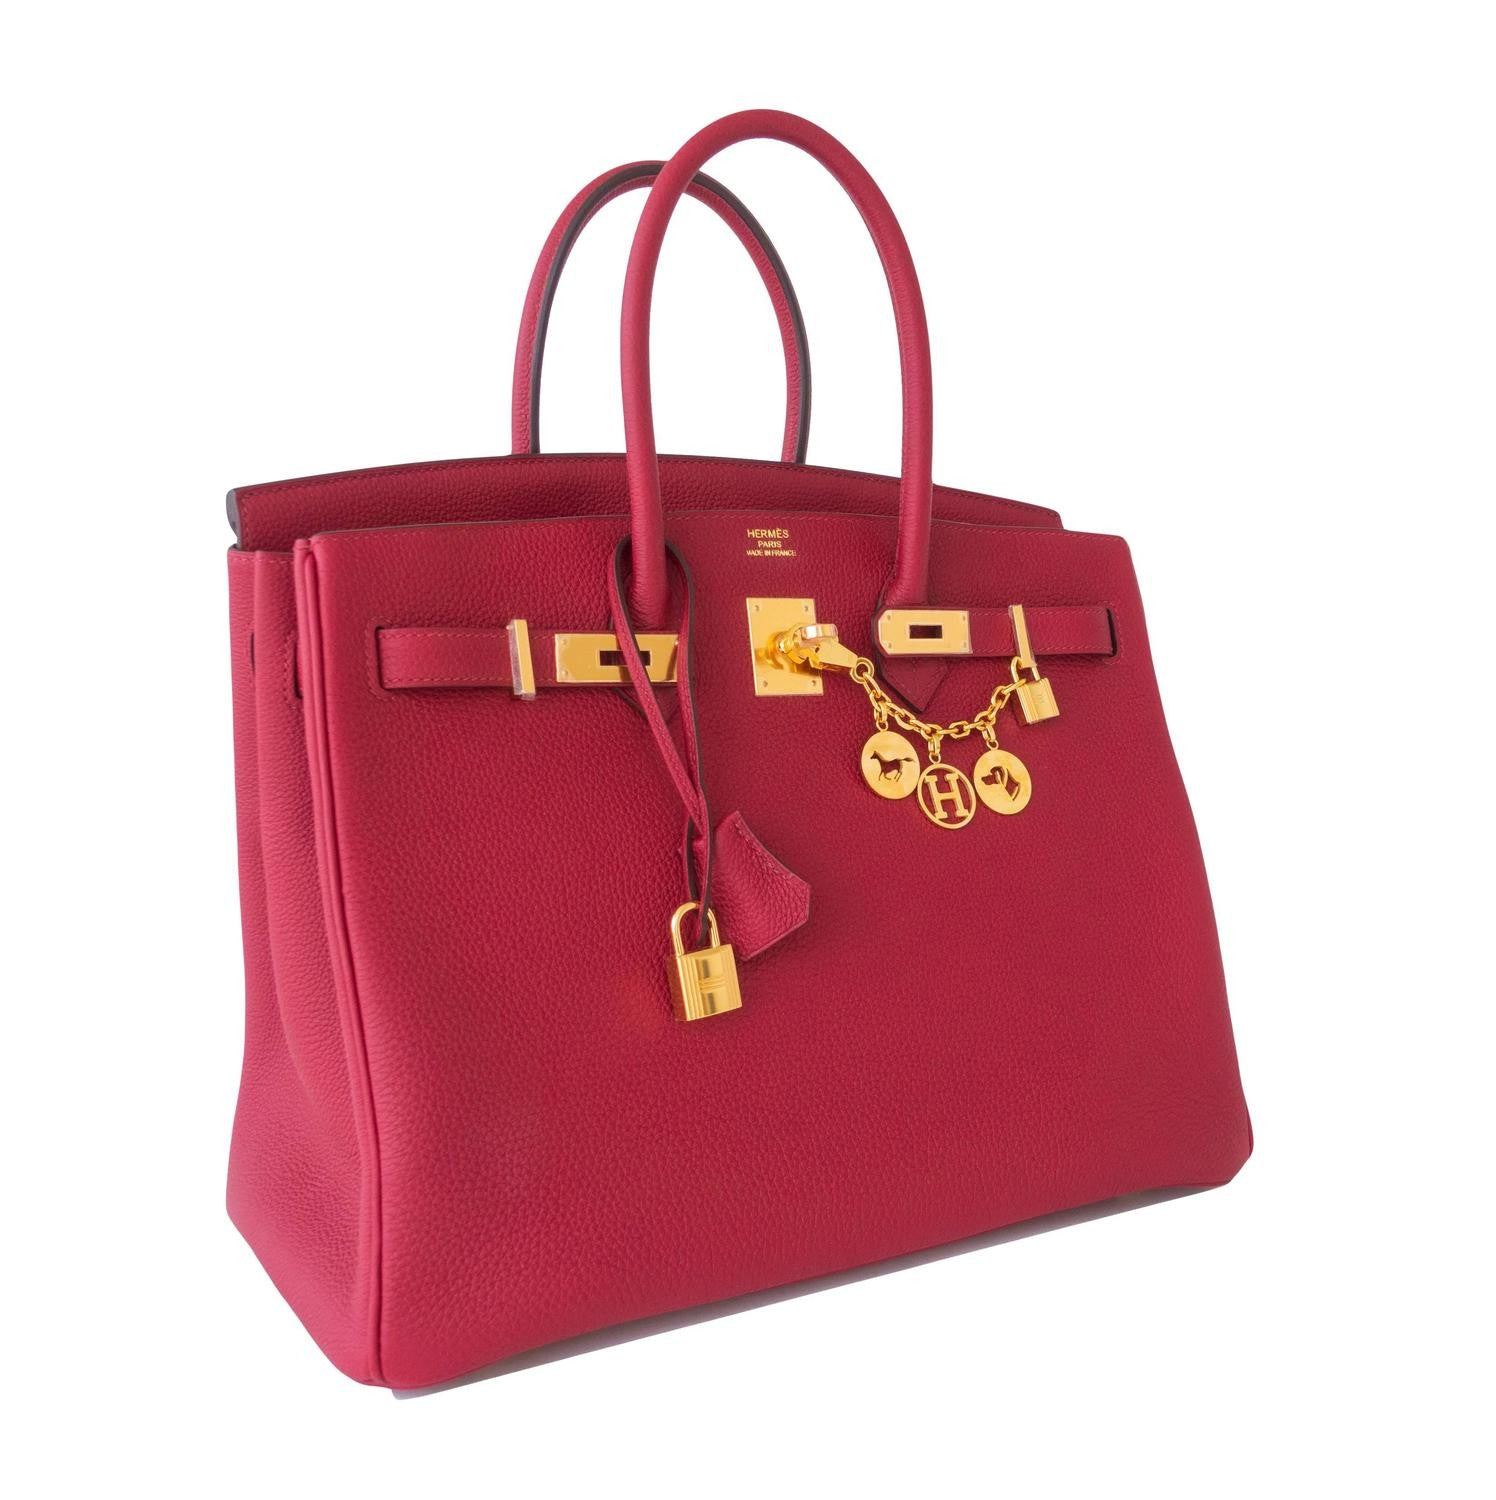 6d1c091bfa ... Hermes Rouge Grenat Red Togo 35cm Birkin Bag Gold Hardware GHW  Exquisite ...